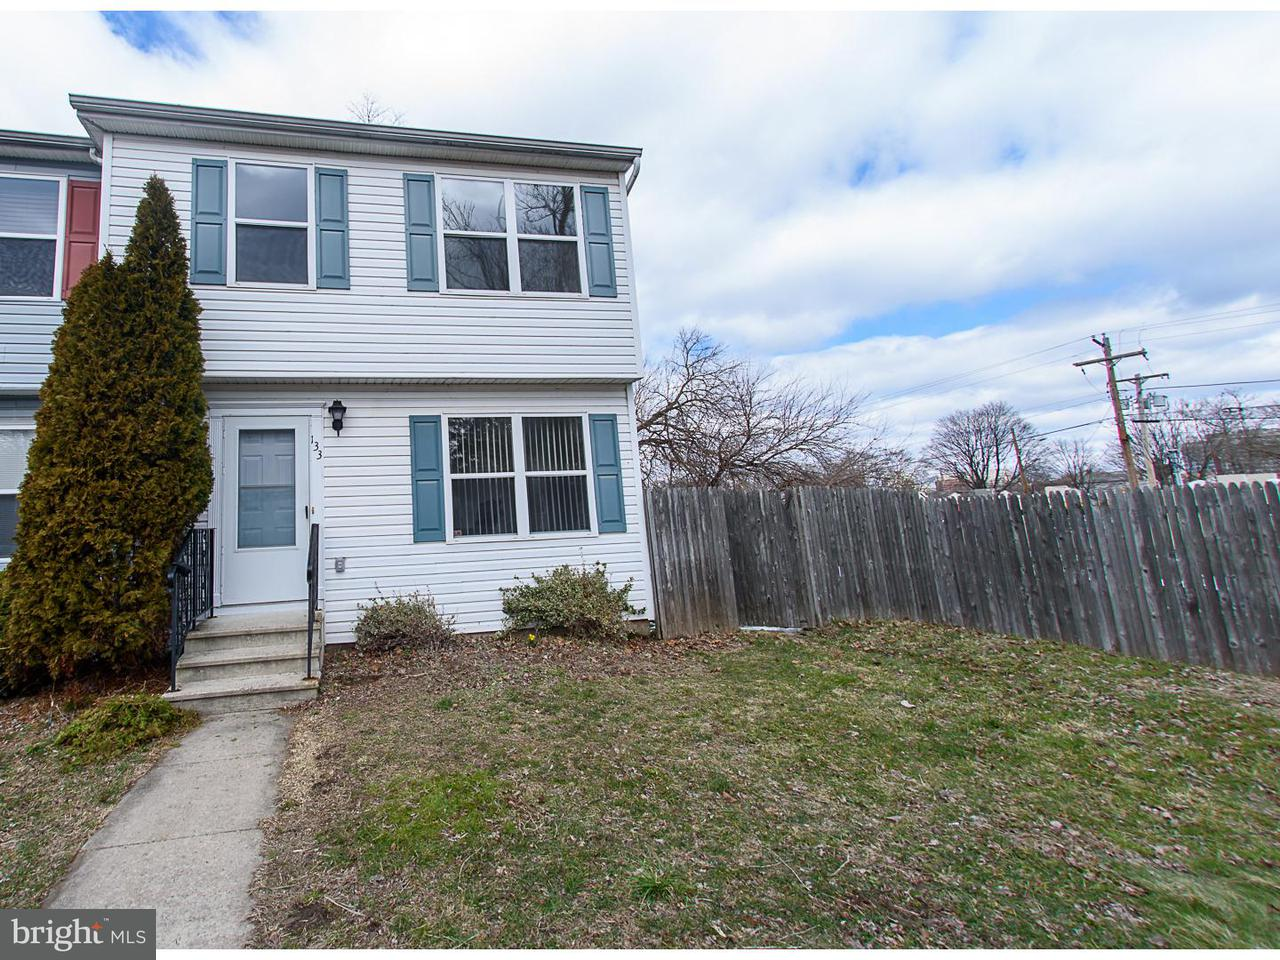 Townhouse for Rent at 133 CHAMBERS Street Morrisville, Pennsylvania 19067 United States